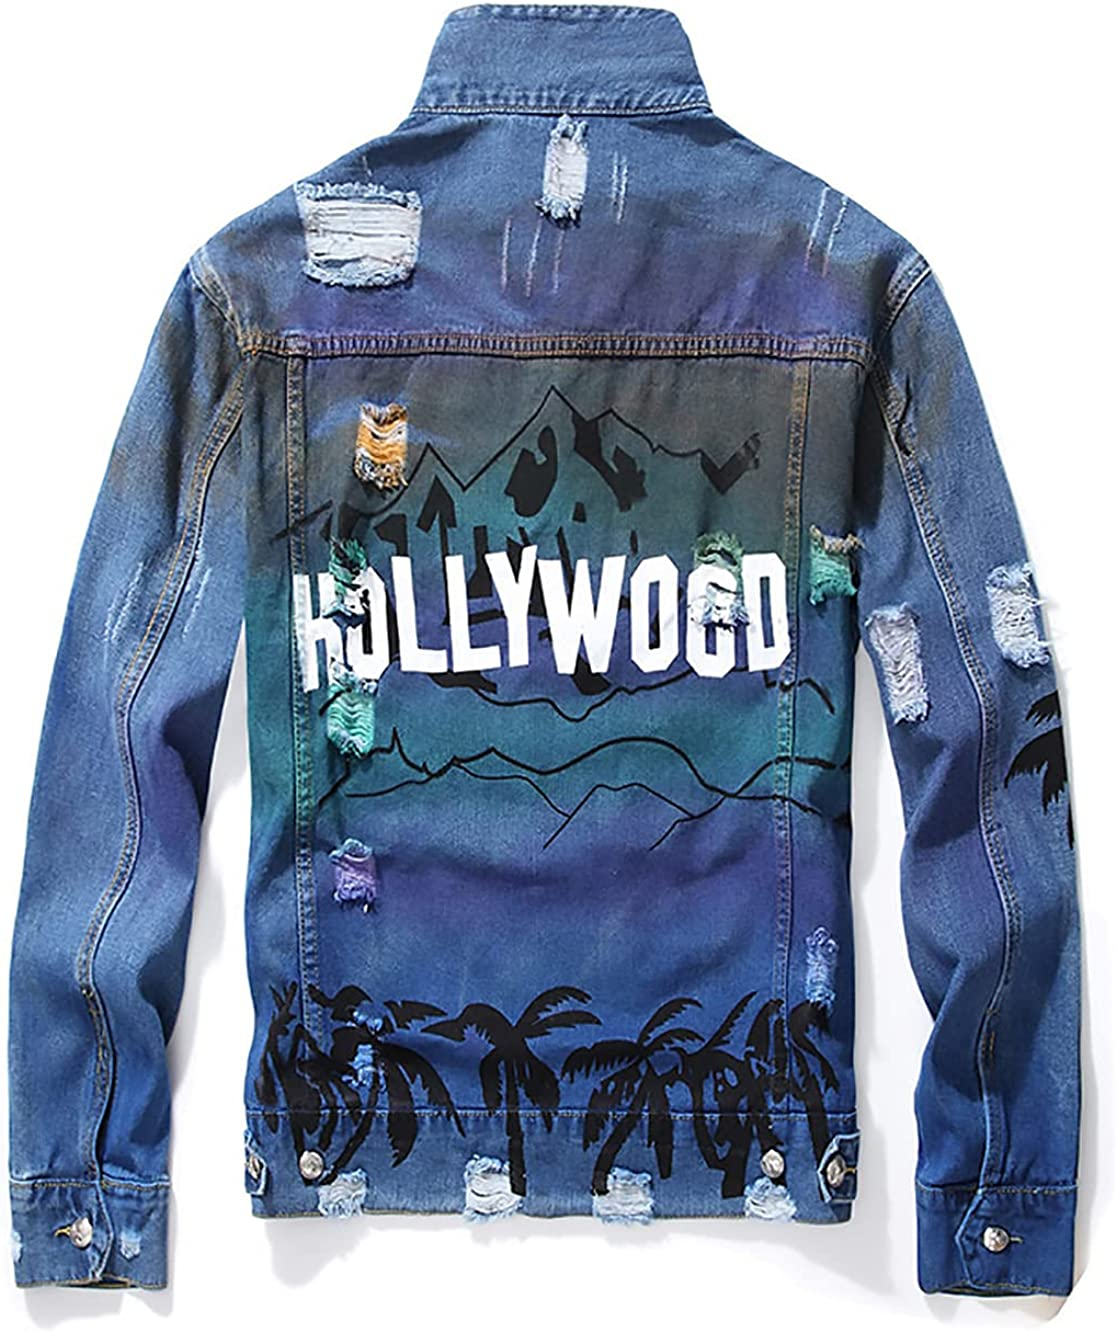 MENNARLEYOU Men's Ripped Denim Jacket Oakland Mall D Patch Paint Trendy Badge Don't miss the campaign